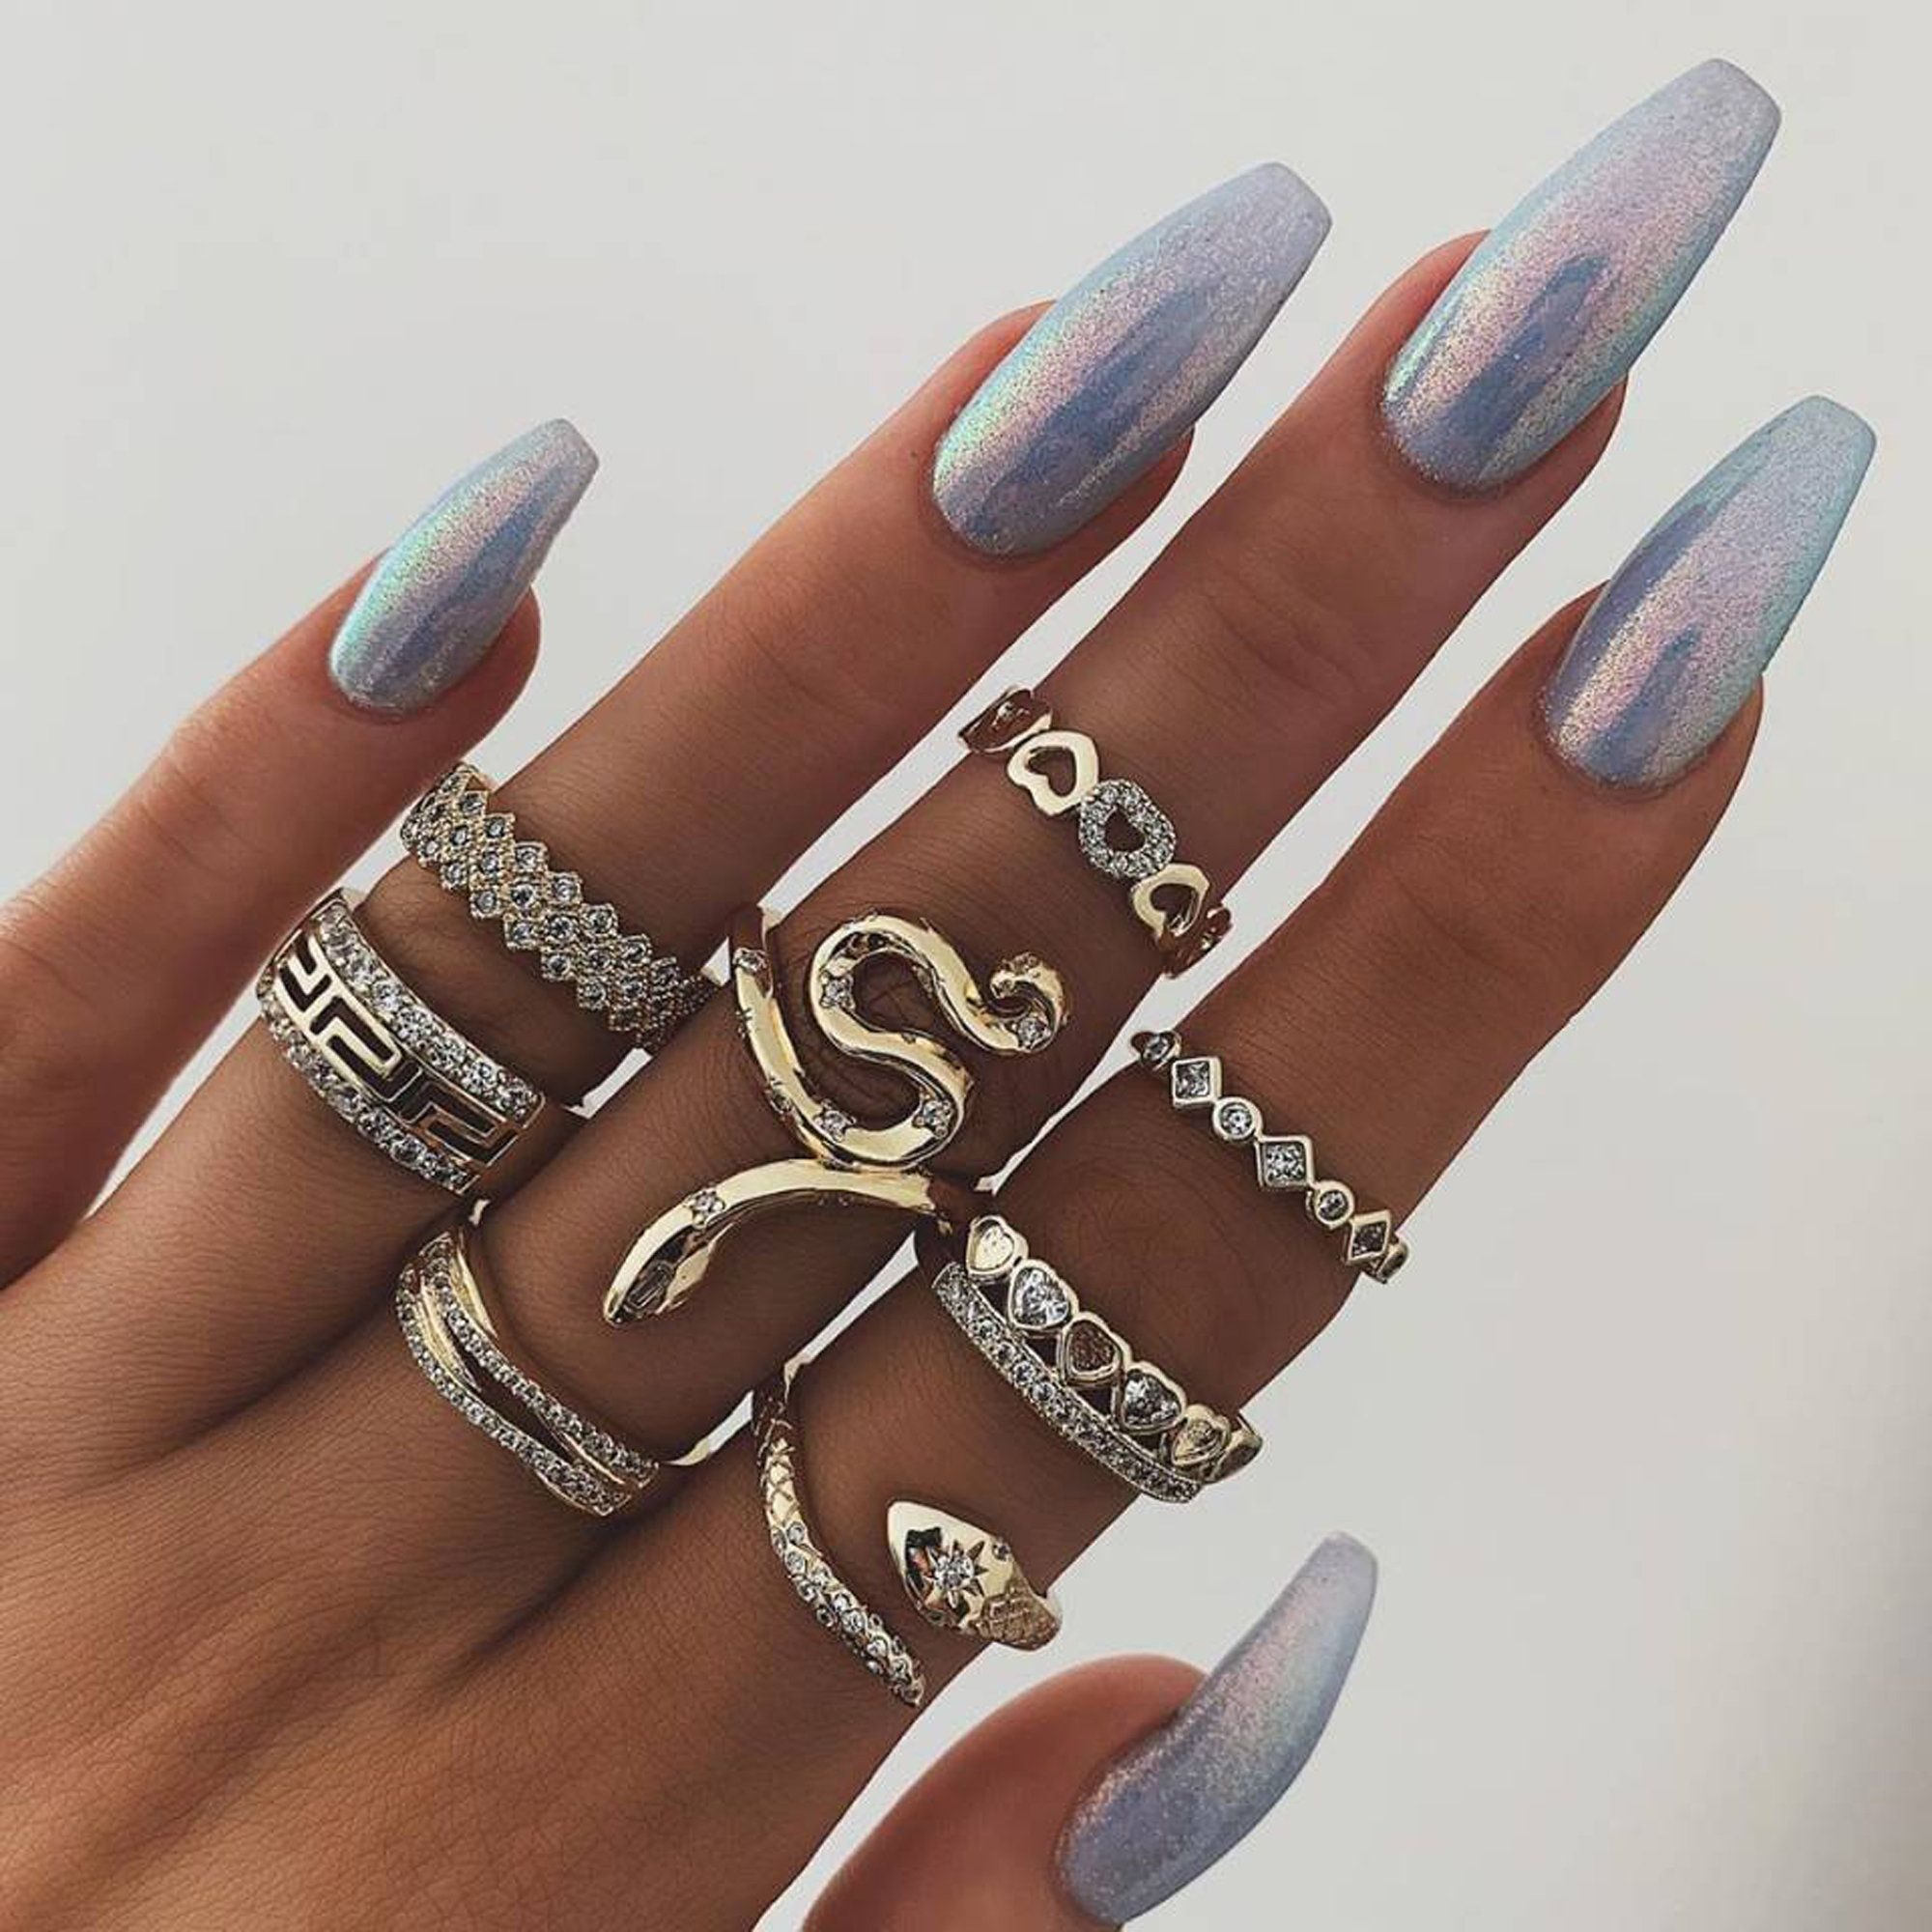 11 Piece Unique Rings Gold Snake Boho Ring Set Bohemian Ring Set Bohemian Stack Ring Set Midi Ring Set Beach Jewelry Boho Stackable Ring Set